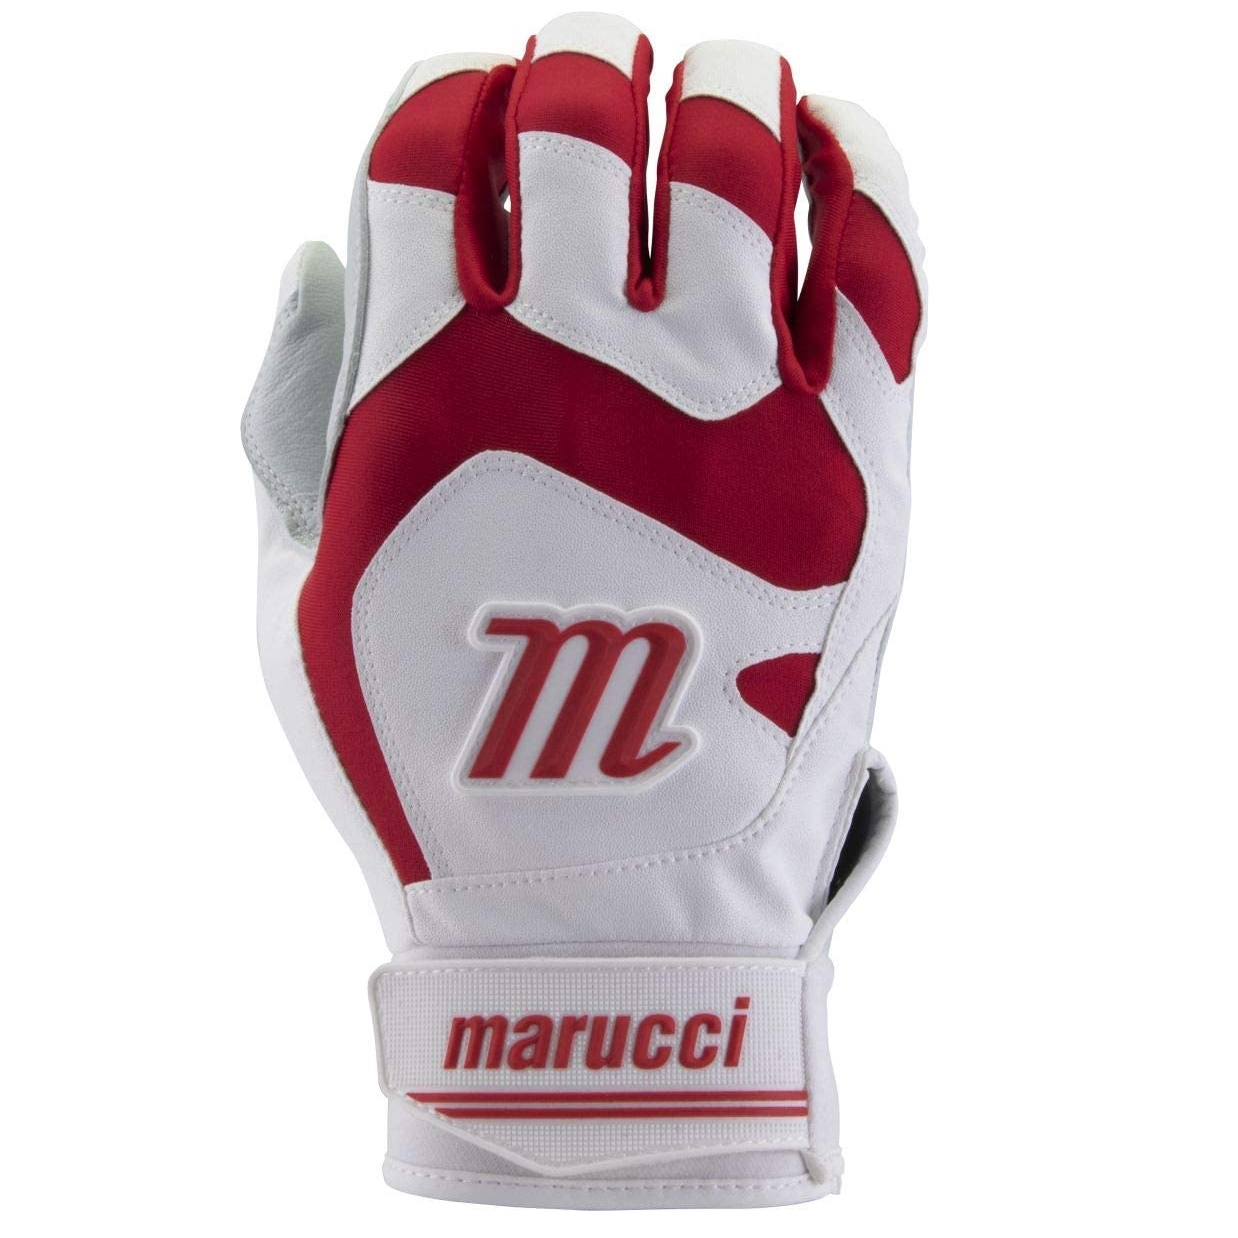 marucci-signature-youth-batting-gloves-red-youth-medium MBGSGN2Y-RW-YM Marucci  Digitally embossed perforated Cabretta sheepskin palm provides maximum grip and durability